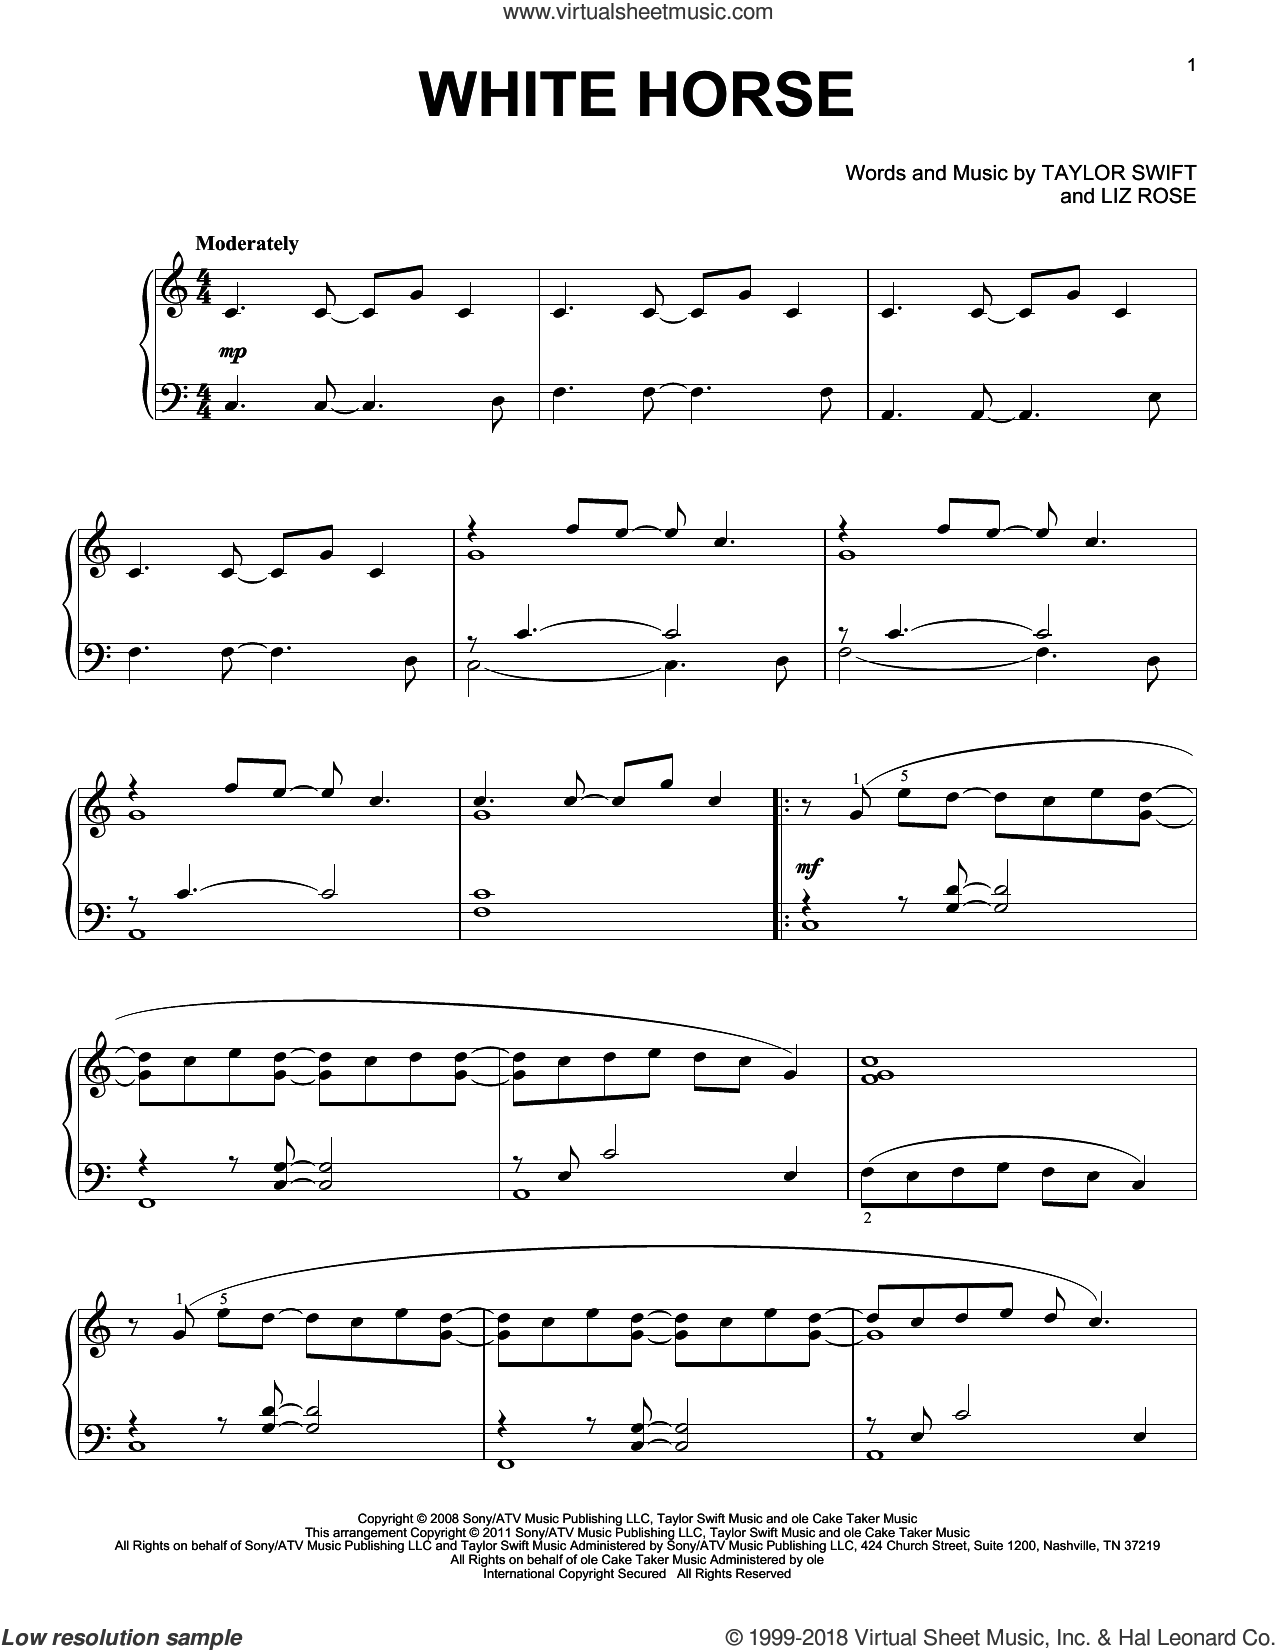 White Horse, (intermediate) sheet music for piano solo by Taylor Swift and Liz Rose, intermediate skill level